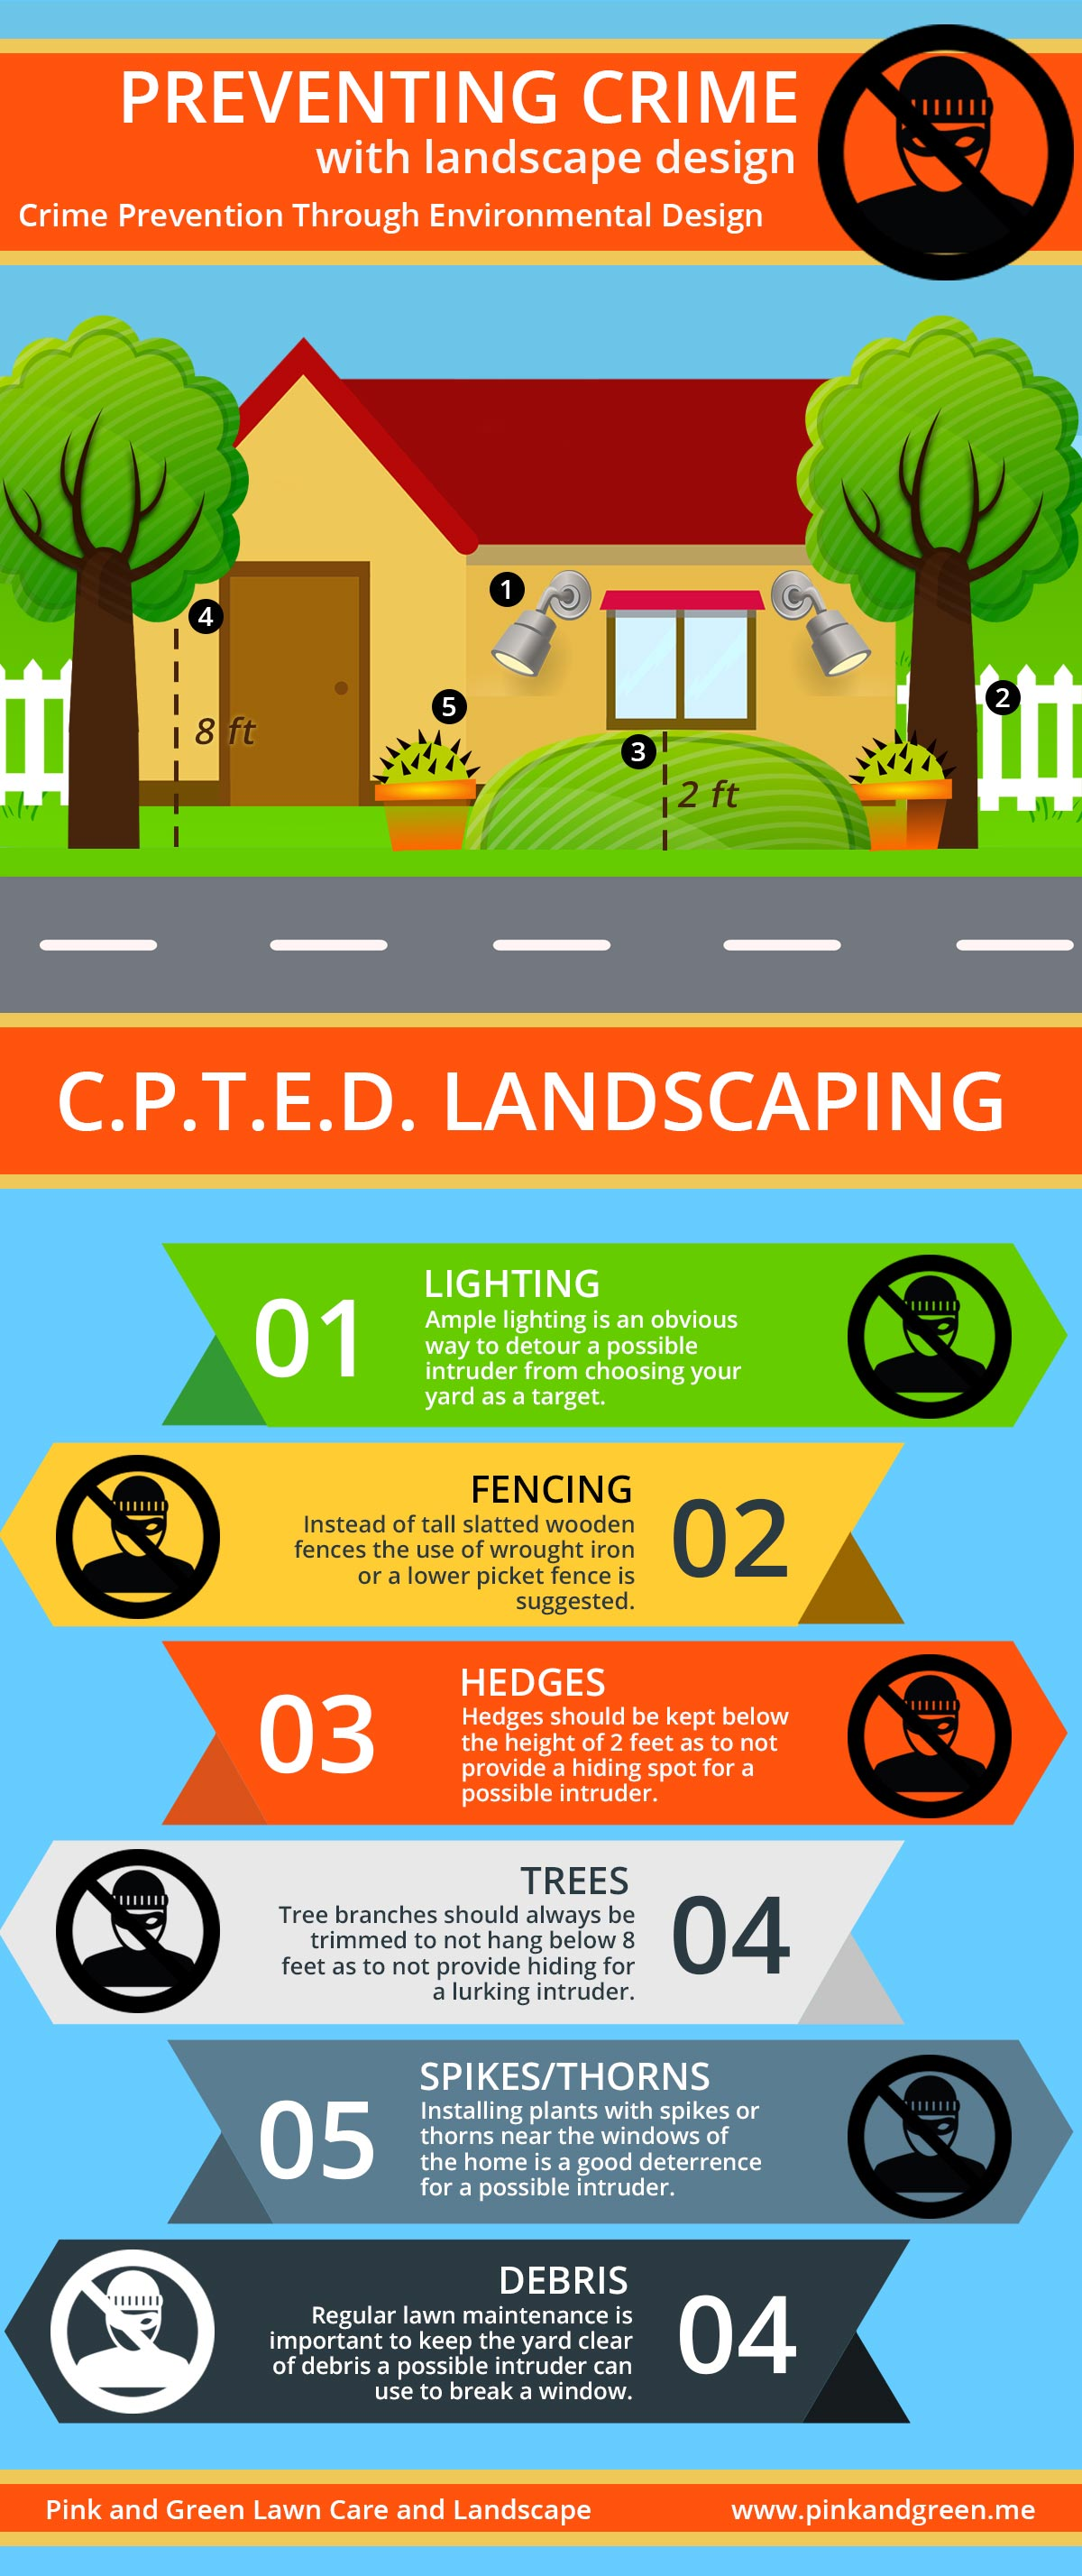 cpted-preventing-crime-with-landscape-de